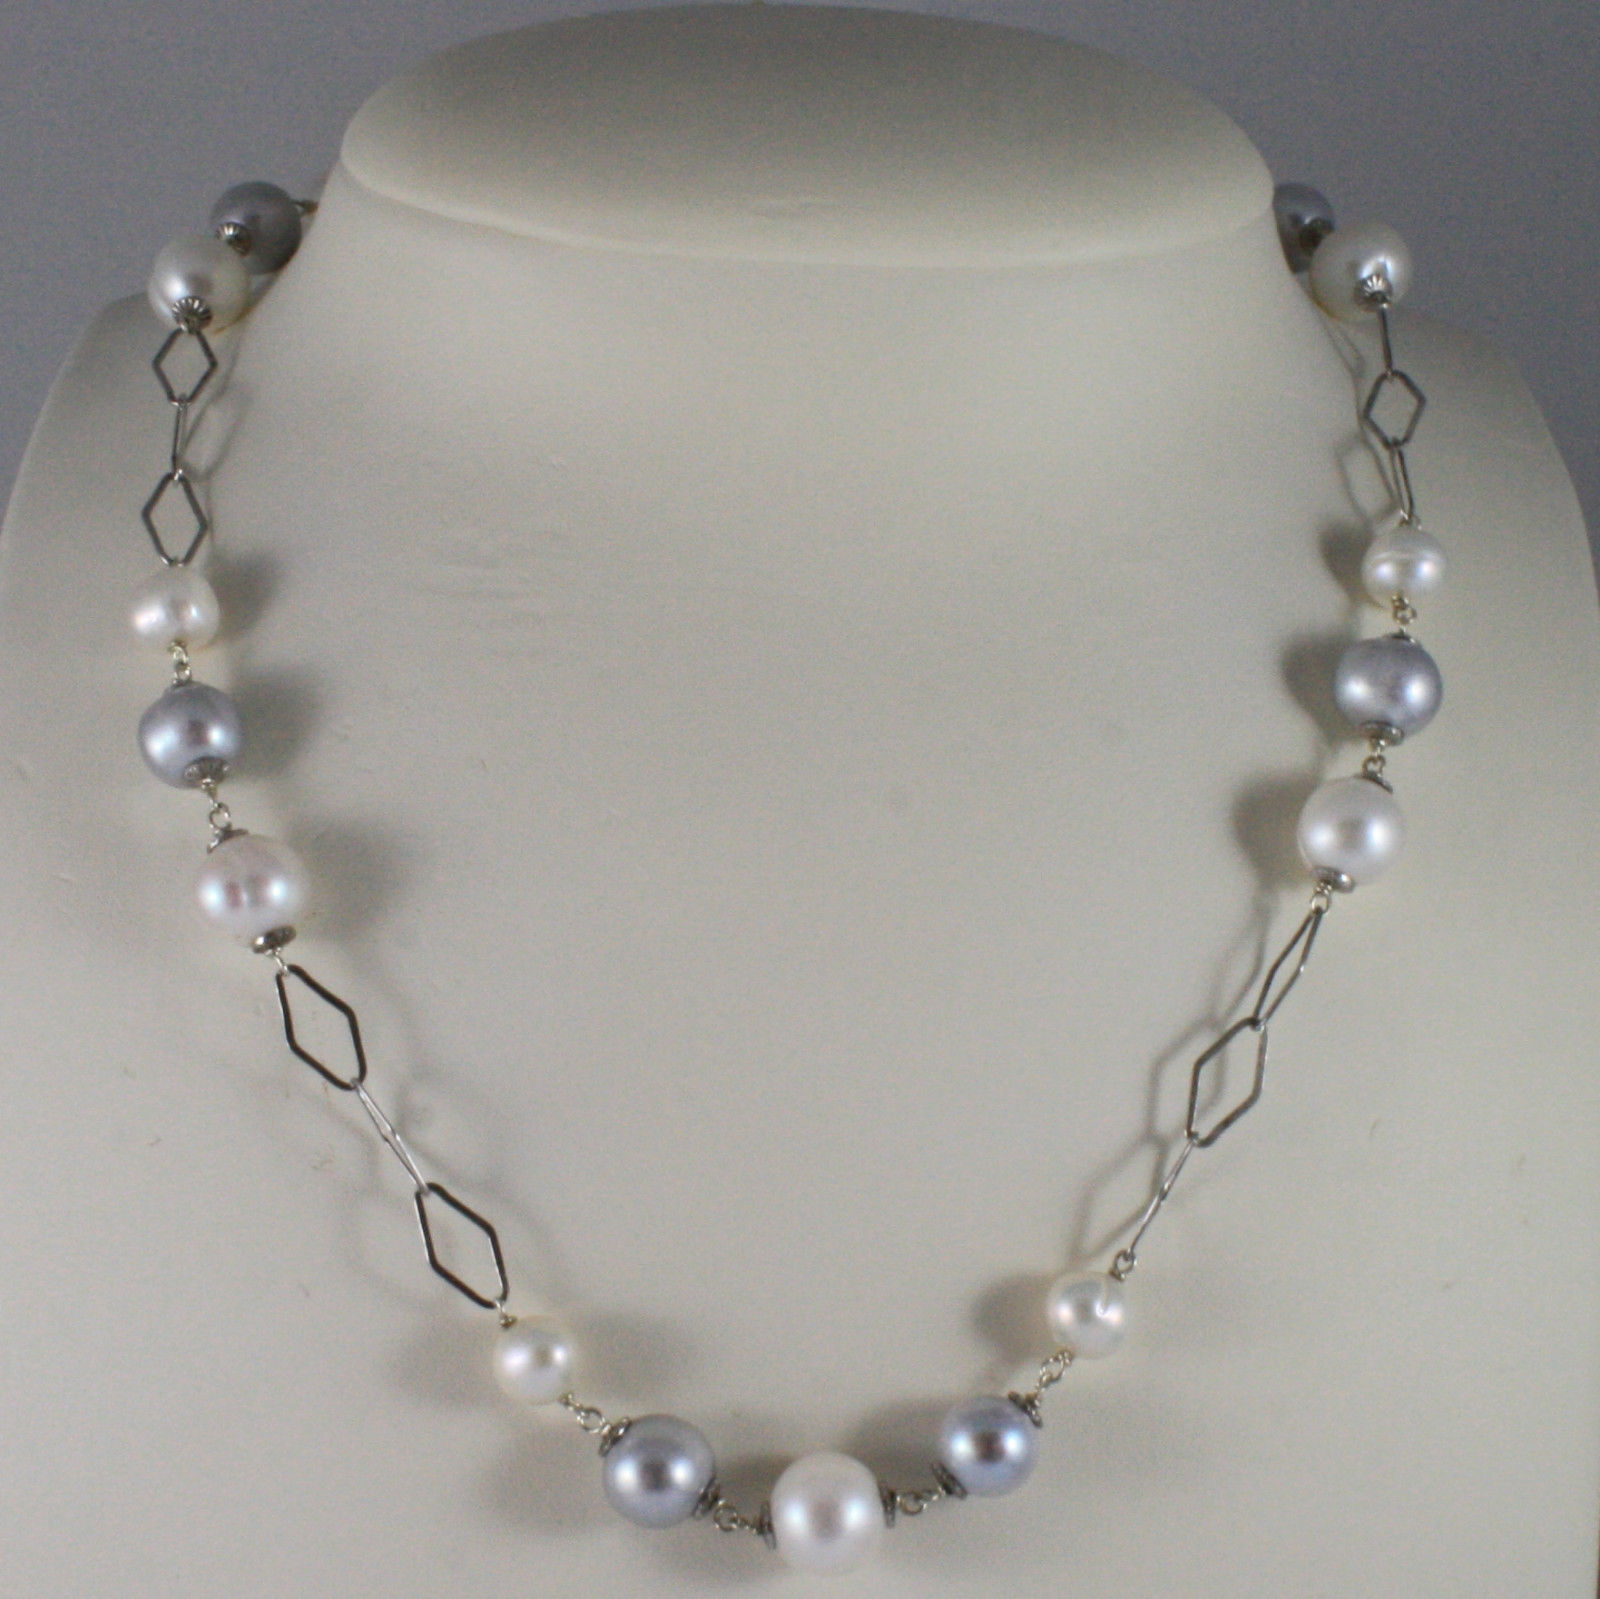 .925 SILVER RHODIUM NECKLACE WITH FRESHWATER WHITE AND GRAY PEARLS